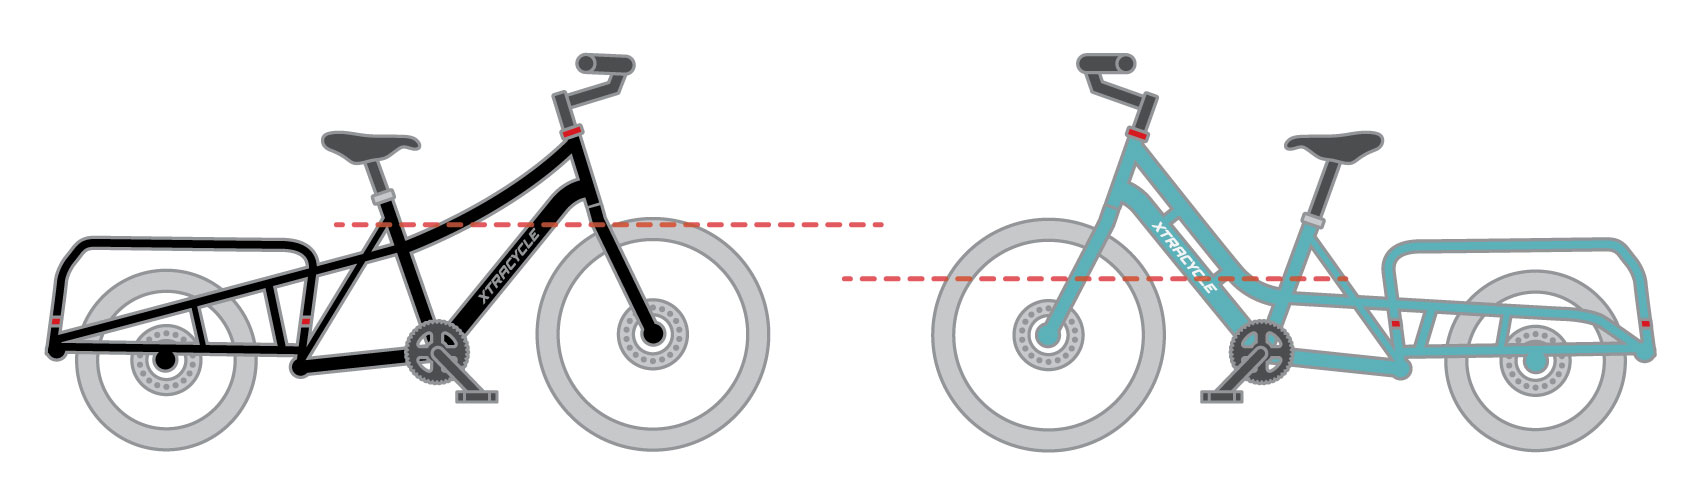 Diagram showing the difference between the Edgerunner Swoop and Classic frame shapes